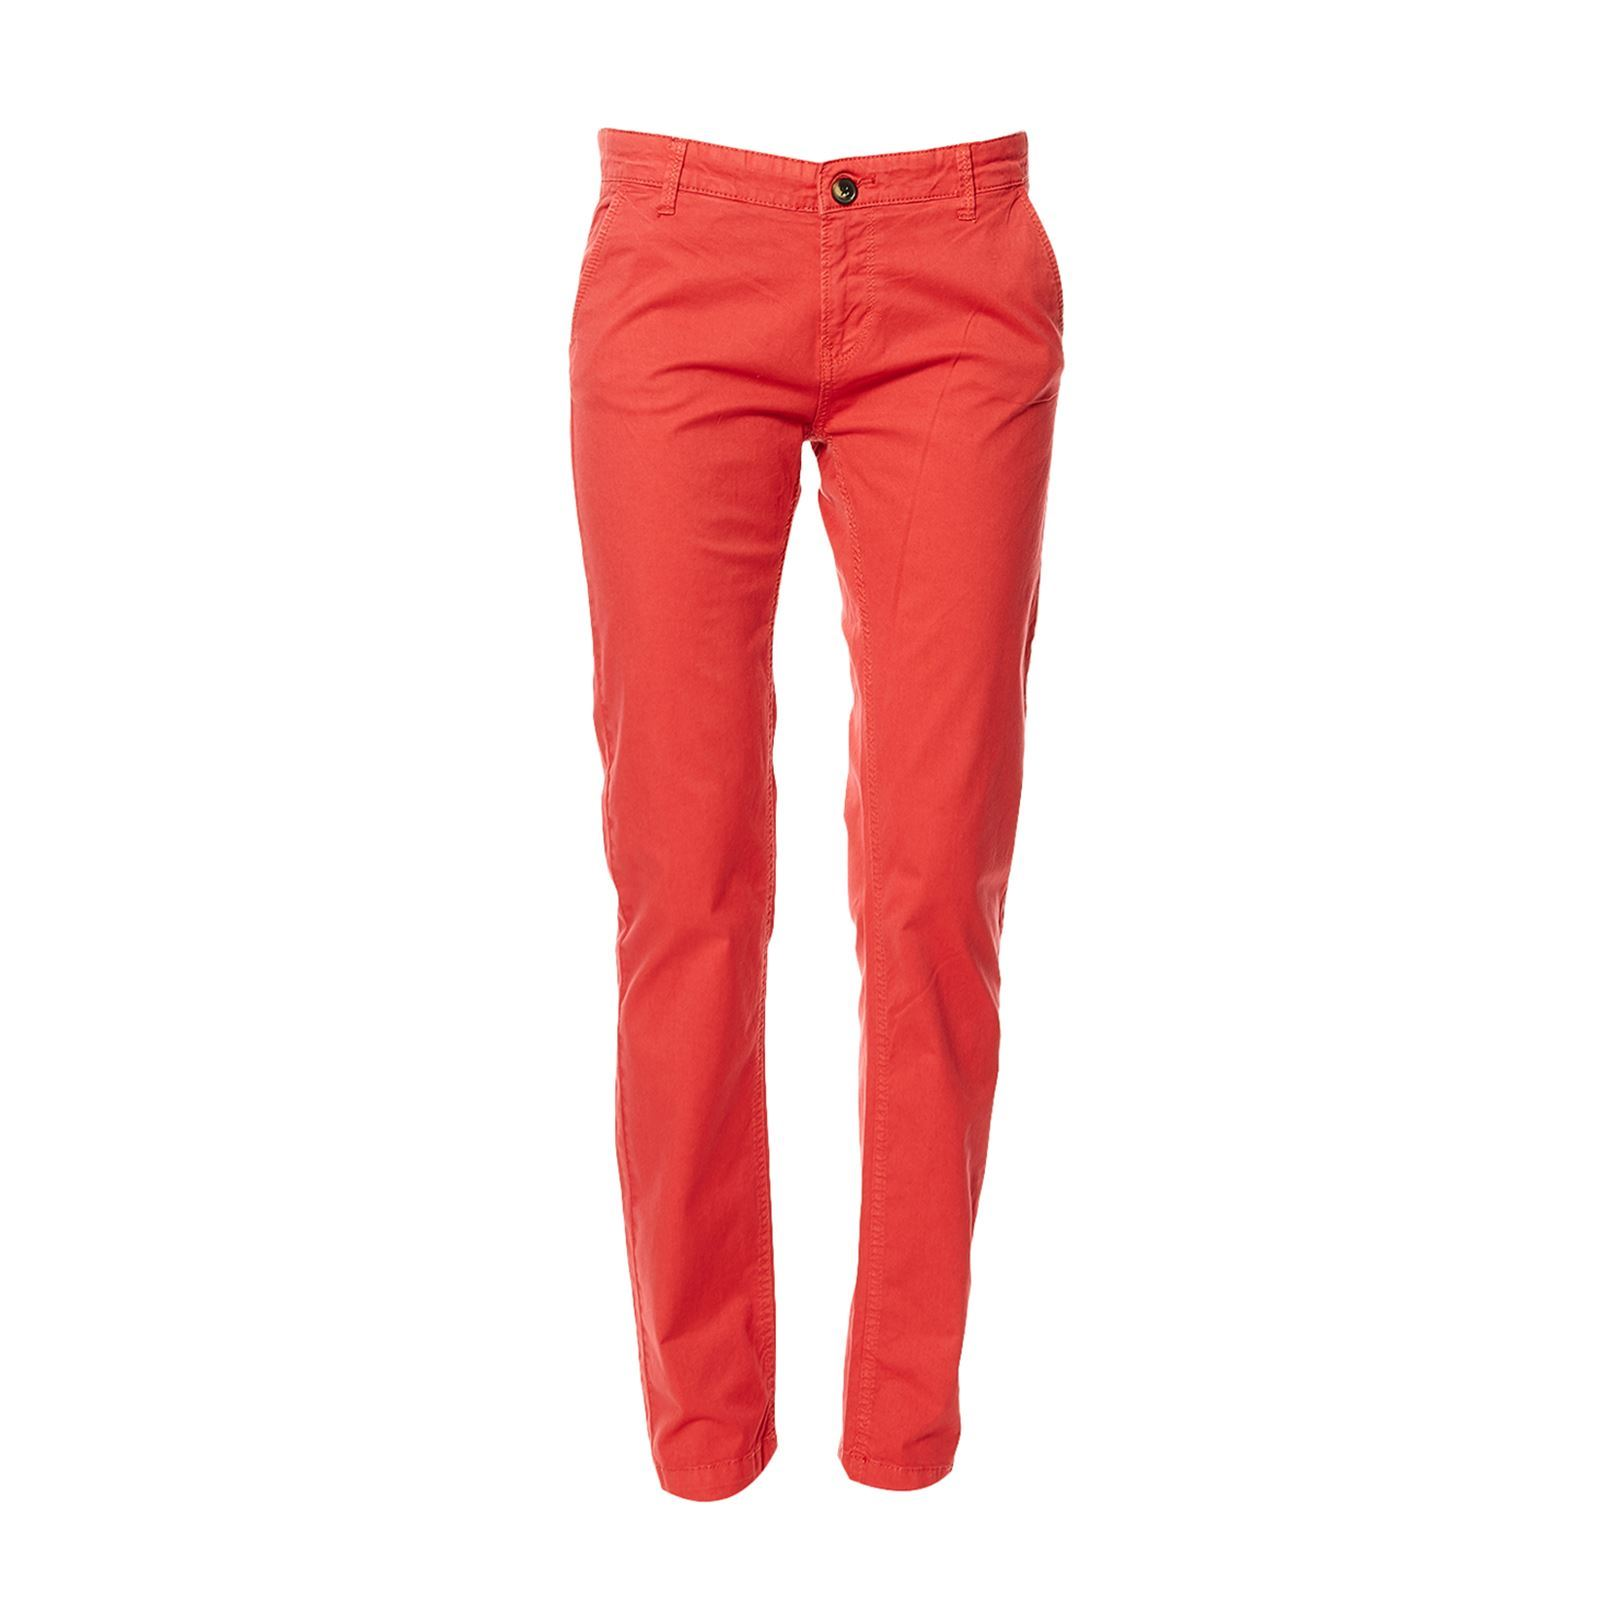 Pepe Jeans London maureen - Pantalon - corail